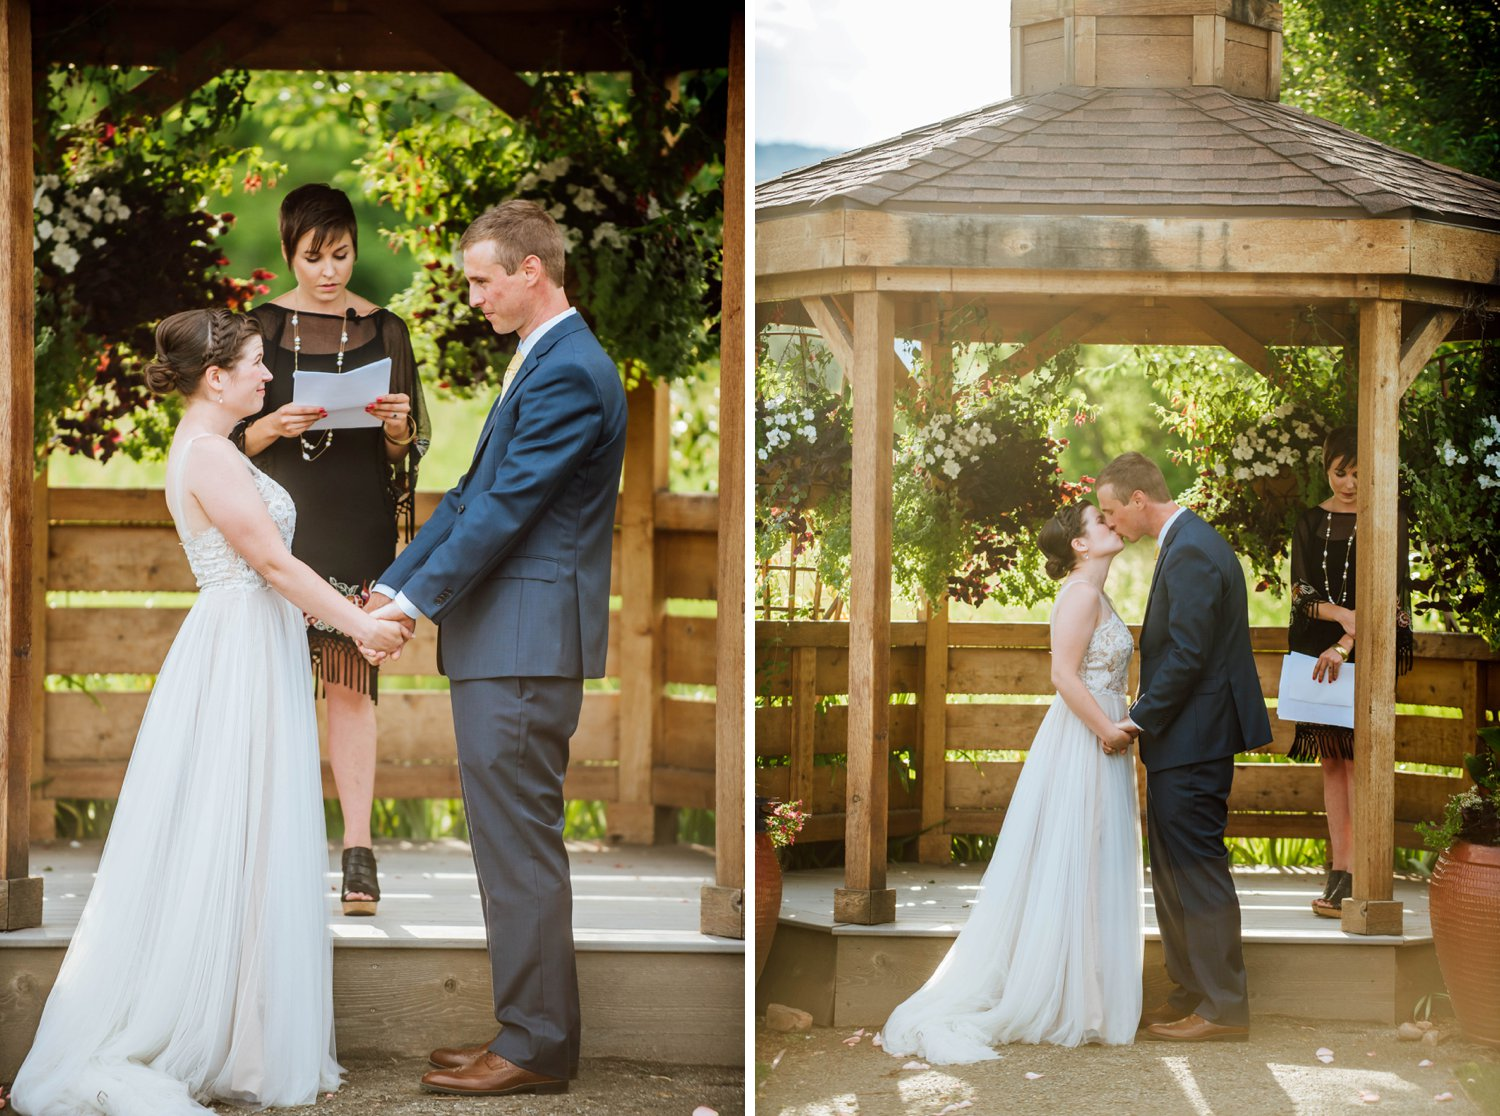 I love wedding ceremonies underneath gazebos, there is something so magical about summer weddings.Photo by Maddie Mae Photography